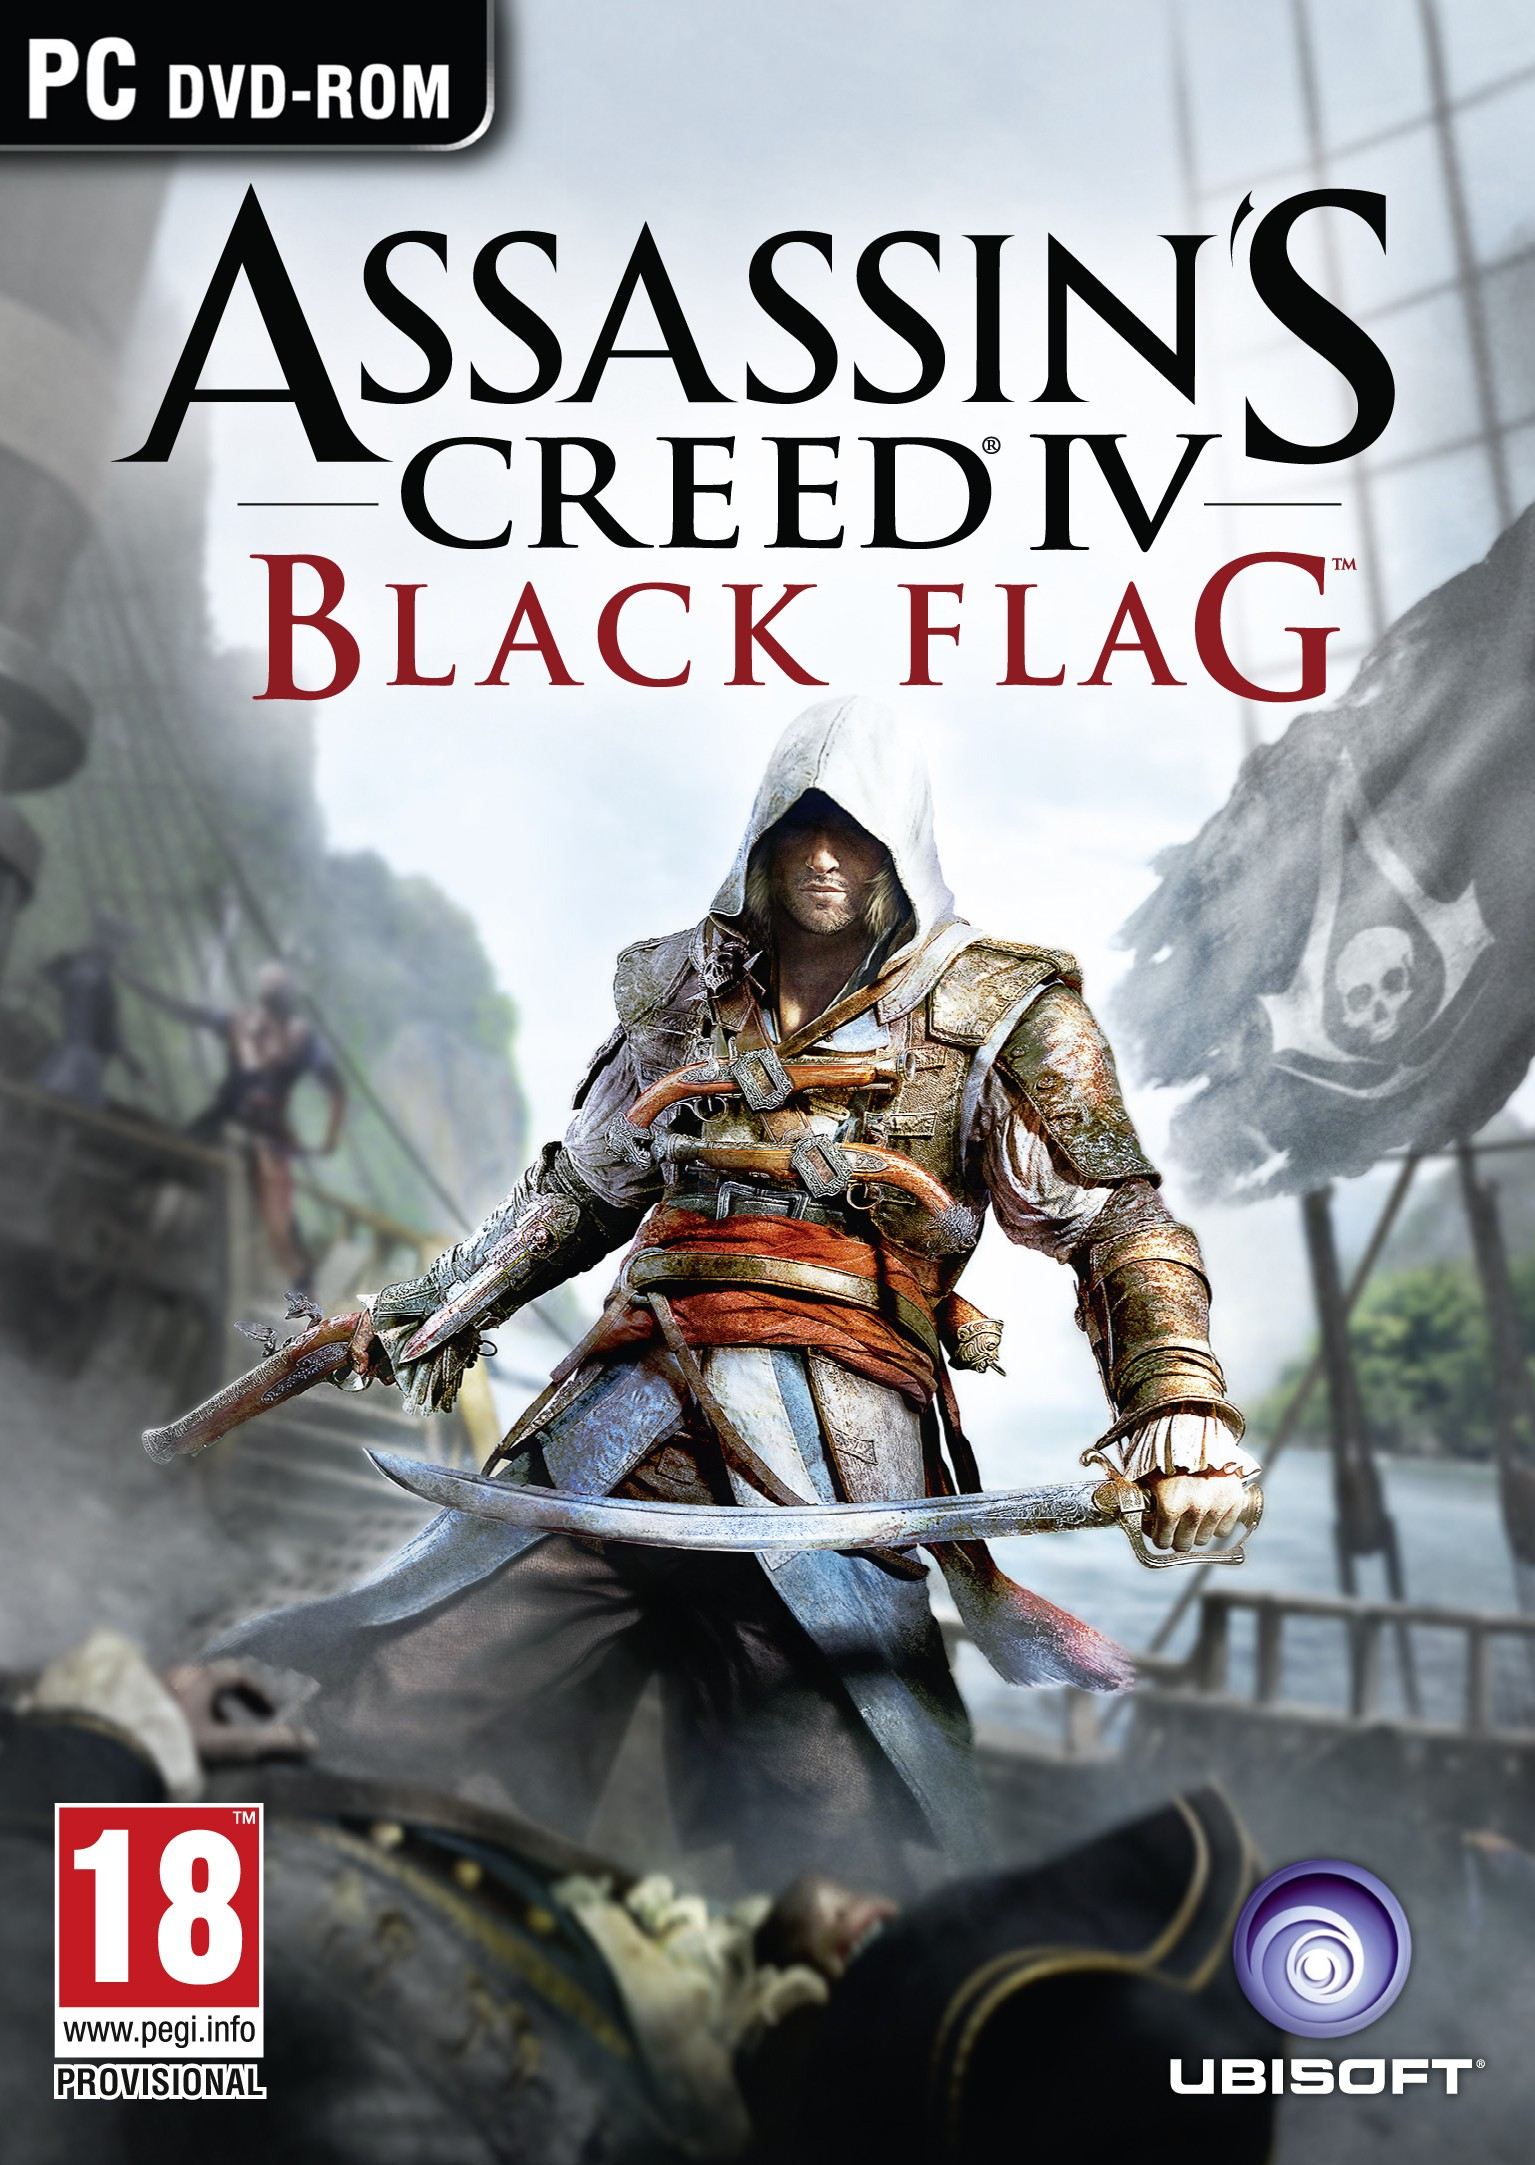 Assassins Creed 4 - Black Flag Deutsche  Untertitel, Menüs, Videos, Stimmen / Sprachausgabe Cover